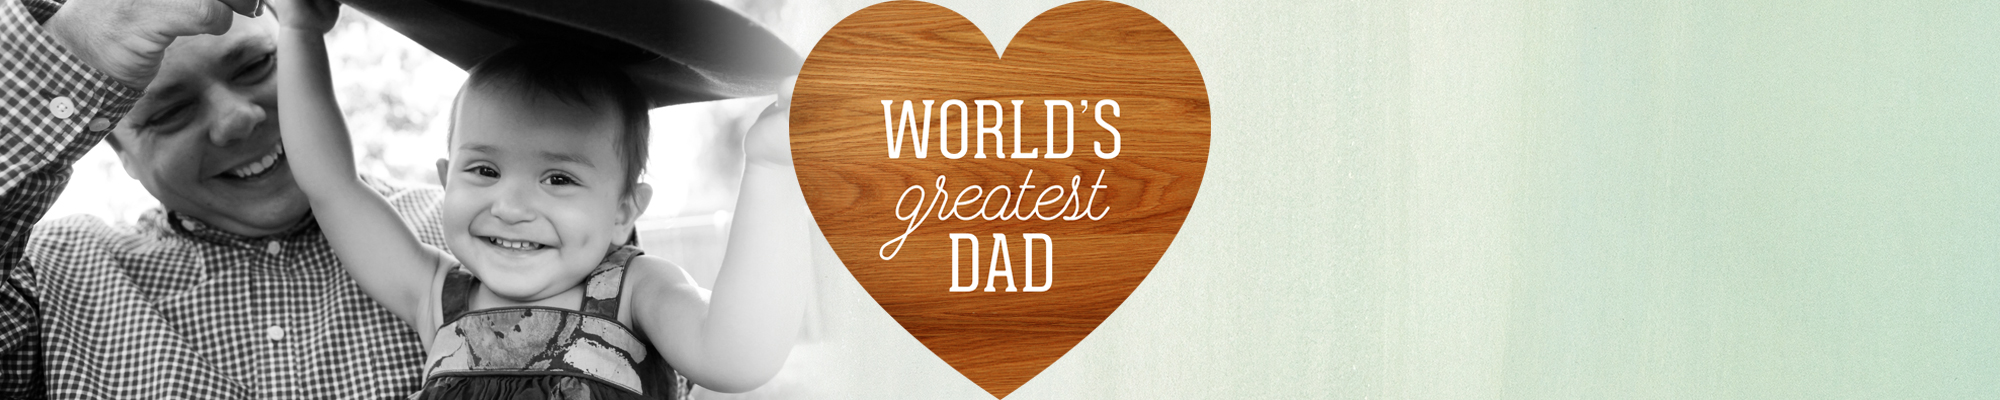 100% pure Dad This June 18, celebrate Dad with gifts that are original as he is.